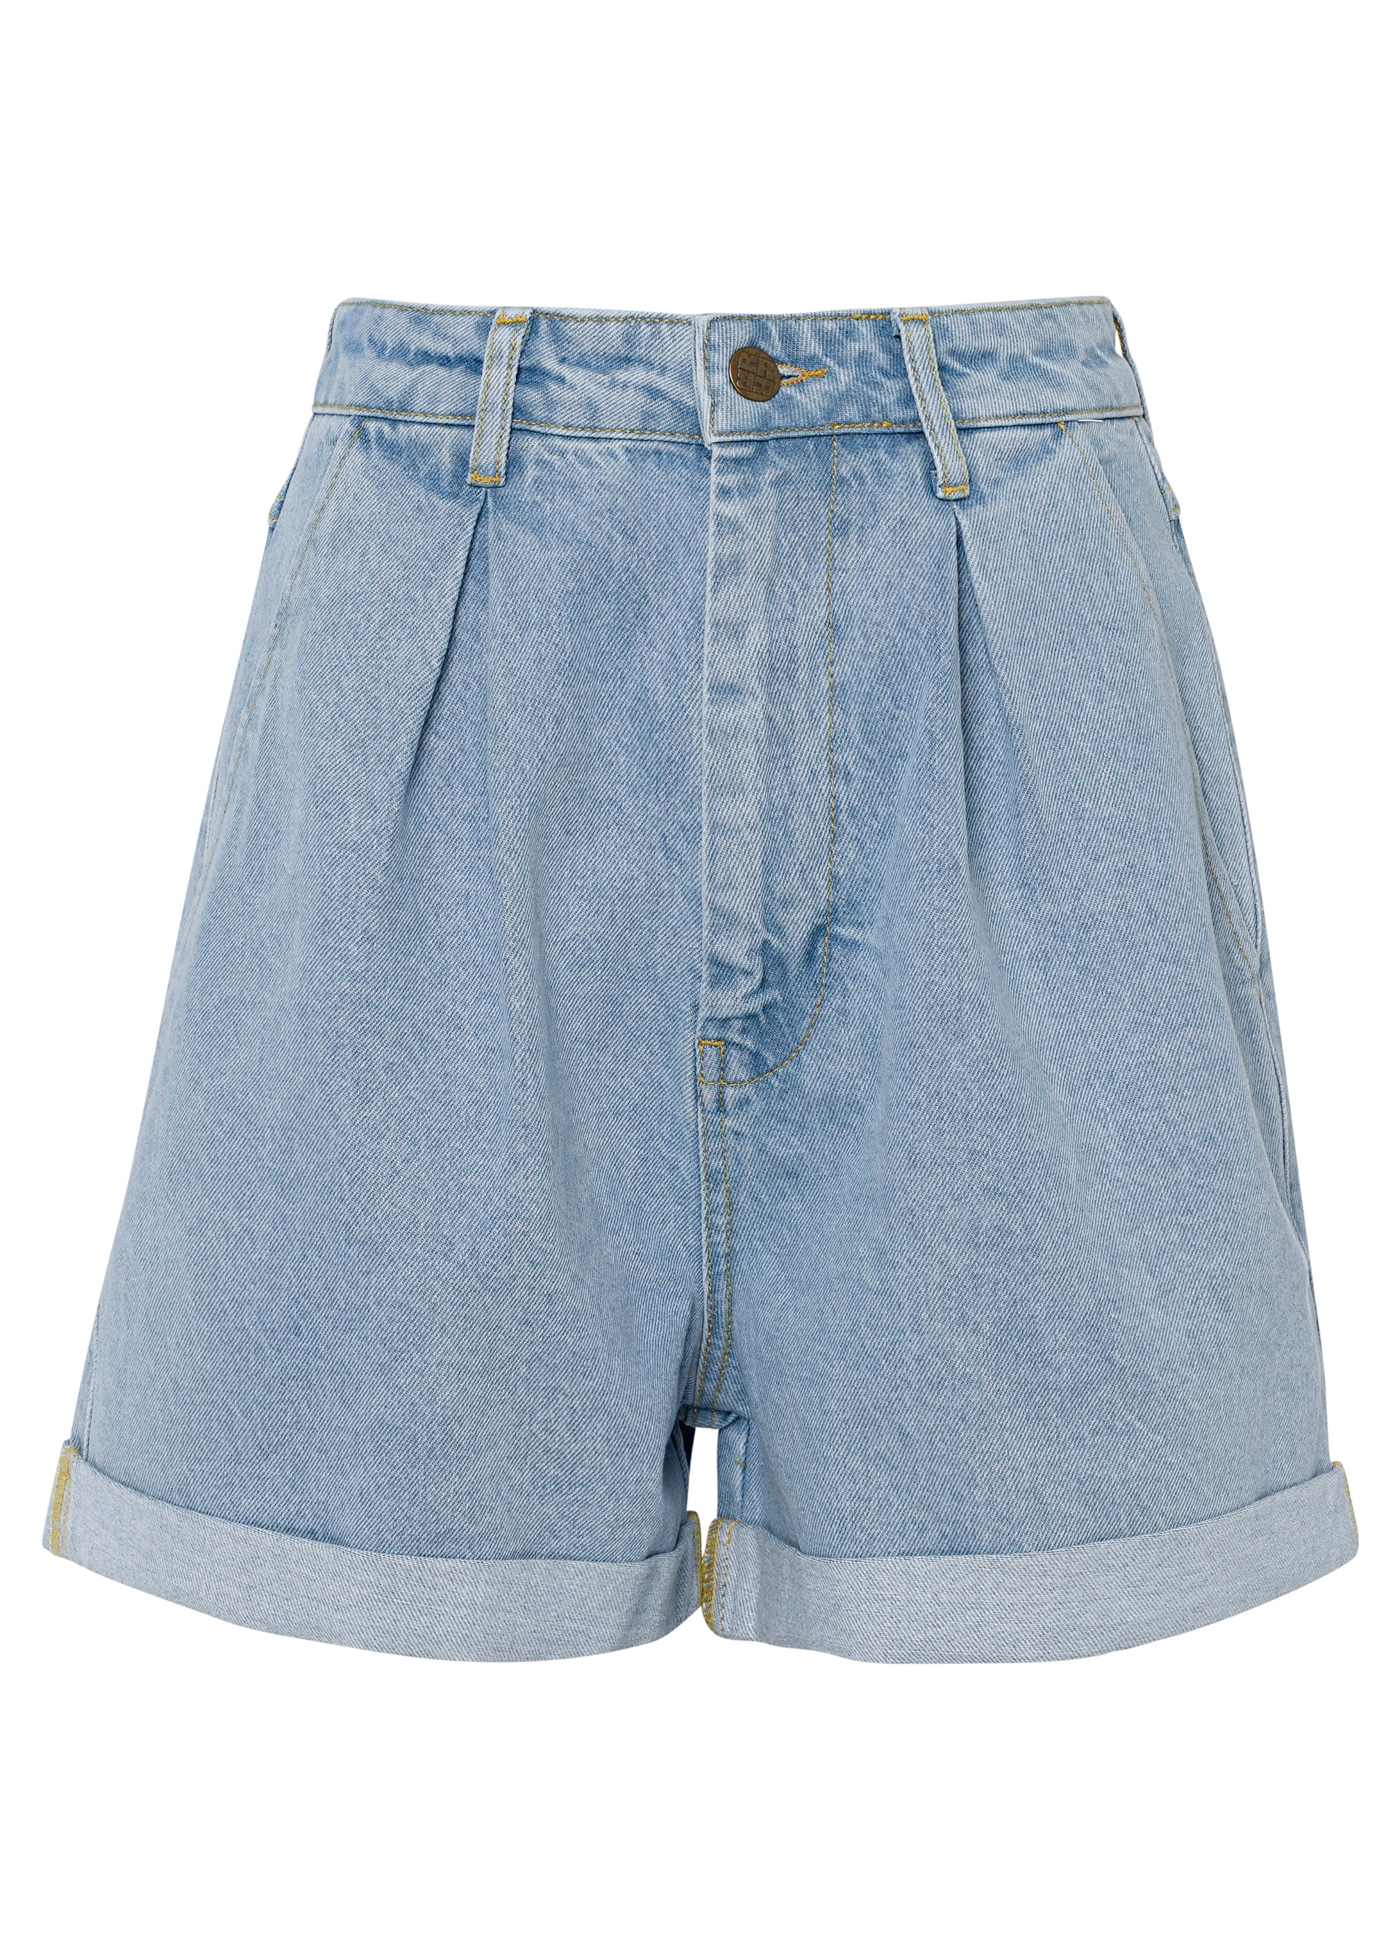 Dilone Shorts image number 0